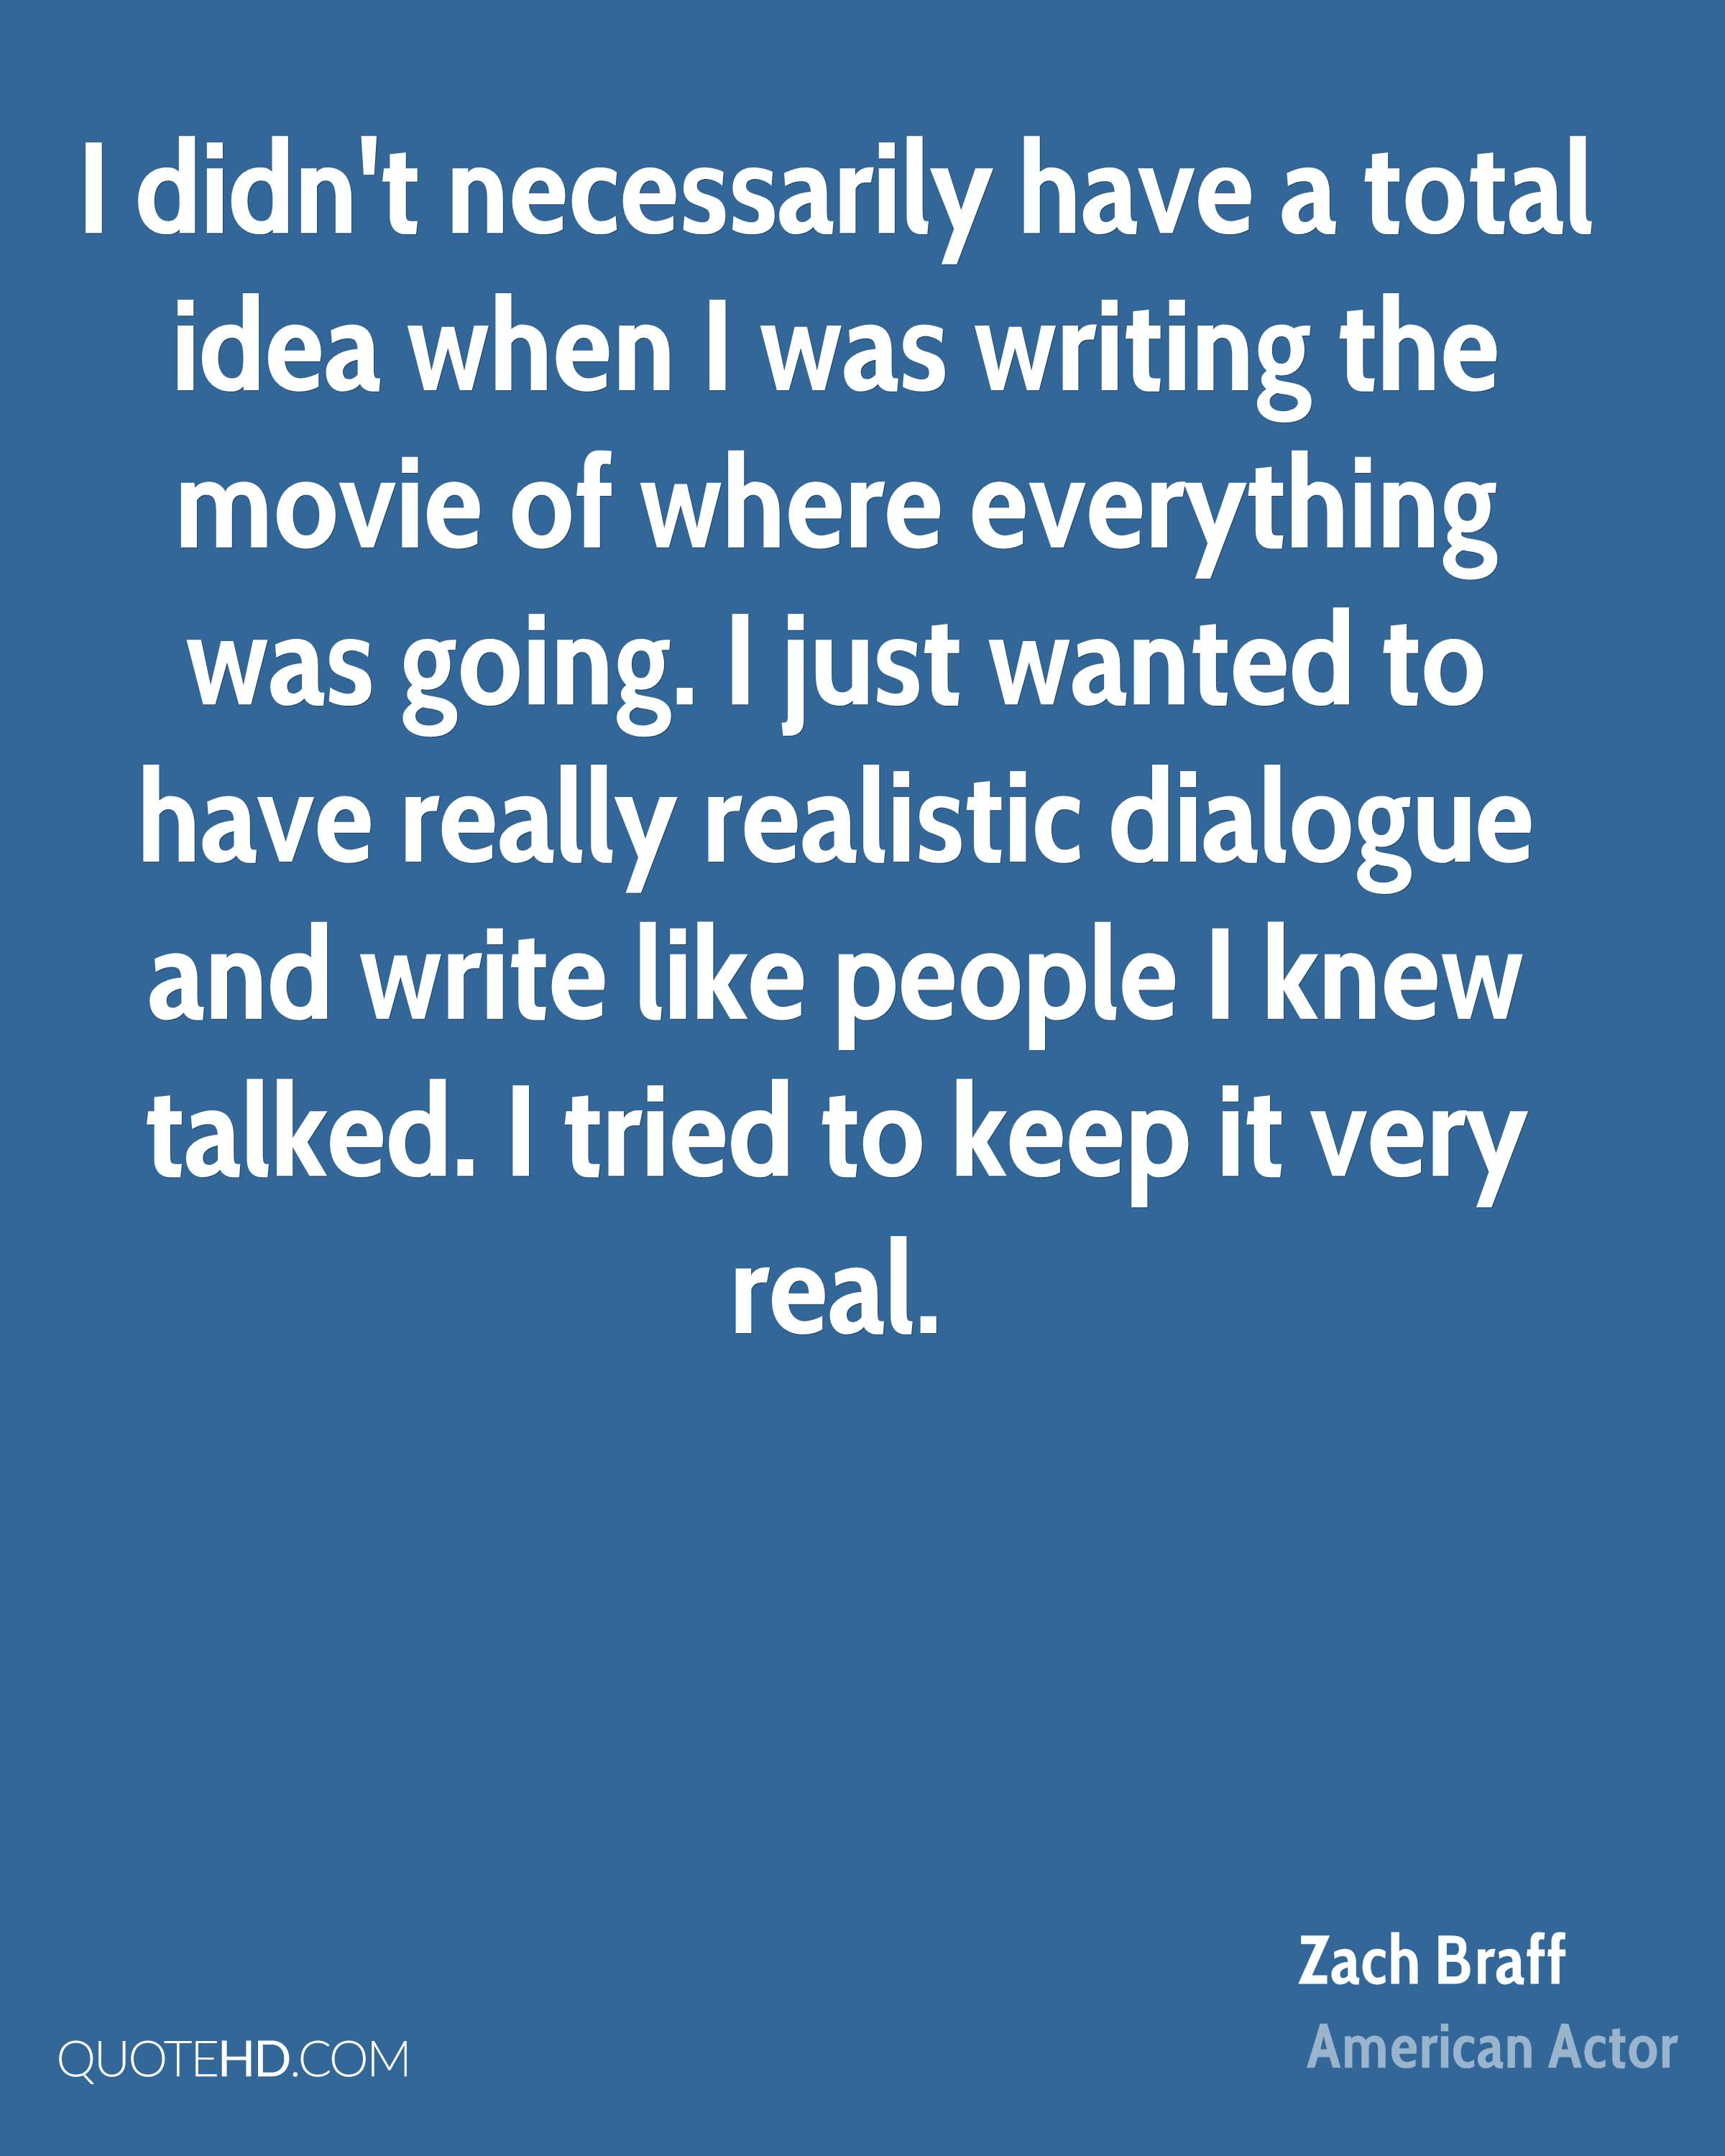 I didn't necessarily have a total idea when I was writing the movie of where everything was going. I just wanted to have really realistic dialogue and write like people I knew talked. I tried to keep it very real.